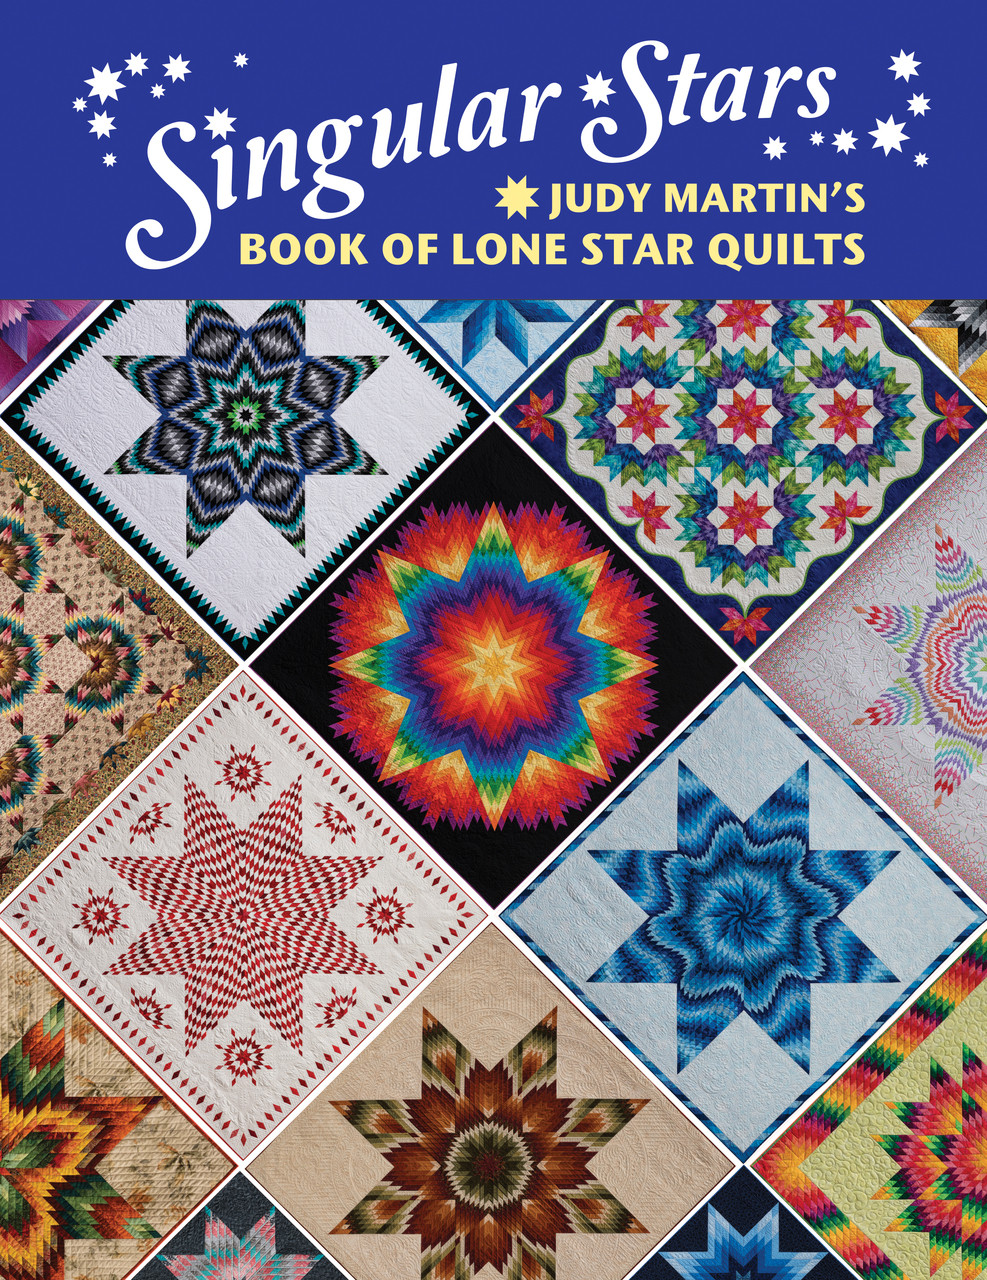 This wonderful book features patterns for 18 sewn and photographed quilts. But those 18 quilts are just the starting point. Singular Stars has everything you need to make an additional 163 variations of the photographed quilts. And those 163 variations are also just a starting point as they represent a tiny fraction of the thousands of quilts possible with this incredible volume! Rather than make Lone Stars of concentric rings of diamonds, Judy realized that by making each of the 8 star arms in 4 asymmetrical sections, she could play with the orientation and the arrangement of each section to create a seemingly limitless number of possibilities. (Think of how you can play with Log Cabin blocks before you assemble the quilt. Now with Judy's designs it's possible to do the same with Lone Stars.) Some of the Lone Stars vary the sizes of the diamonds within the block, thus creating some lovely effects. Another category of Lone Stars plays with the placement of color within a regular block, which allows you to get a lot of interesting looks. Plus, related sizes allow you to mix and match many of the border or background elements to offer even more possibilities. Of course, if you prefer, you can simply follow the pattern and make a gorgeous quilt just like you see in the photograph. Judy Martin uses her half-century of quilt-making experience to give quilters the ultimate guidance for mastering Lone Star quilts. She shows how to get your seam allowance perfect, which is the most important factor in patchwork. She discusses how to master joints, press seams, and work with the more stable lengthwise grain. Most of the quilts in Singular Stars can be made without Y-seams. With its thrilling bounty of groundbreaking designs and its detailed guidance on every aspect of making a Lone Star quilt, Singular Stars is the most thorough, the most ingenious, book on Lone Stars ever written. There really is no other book like it.